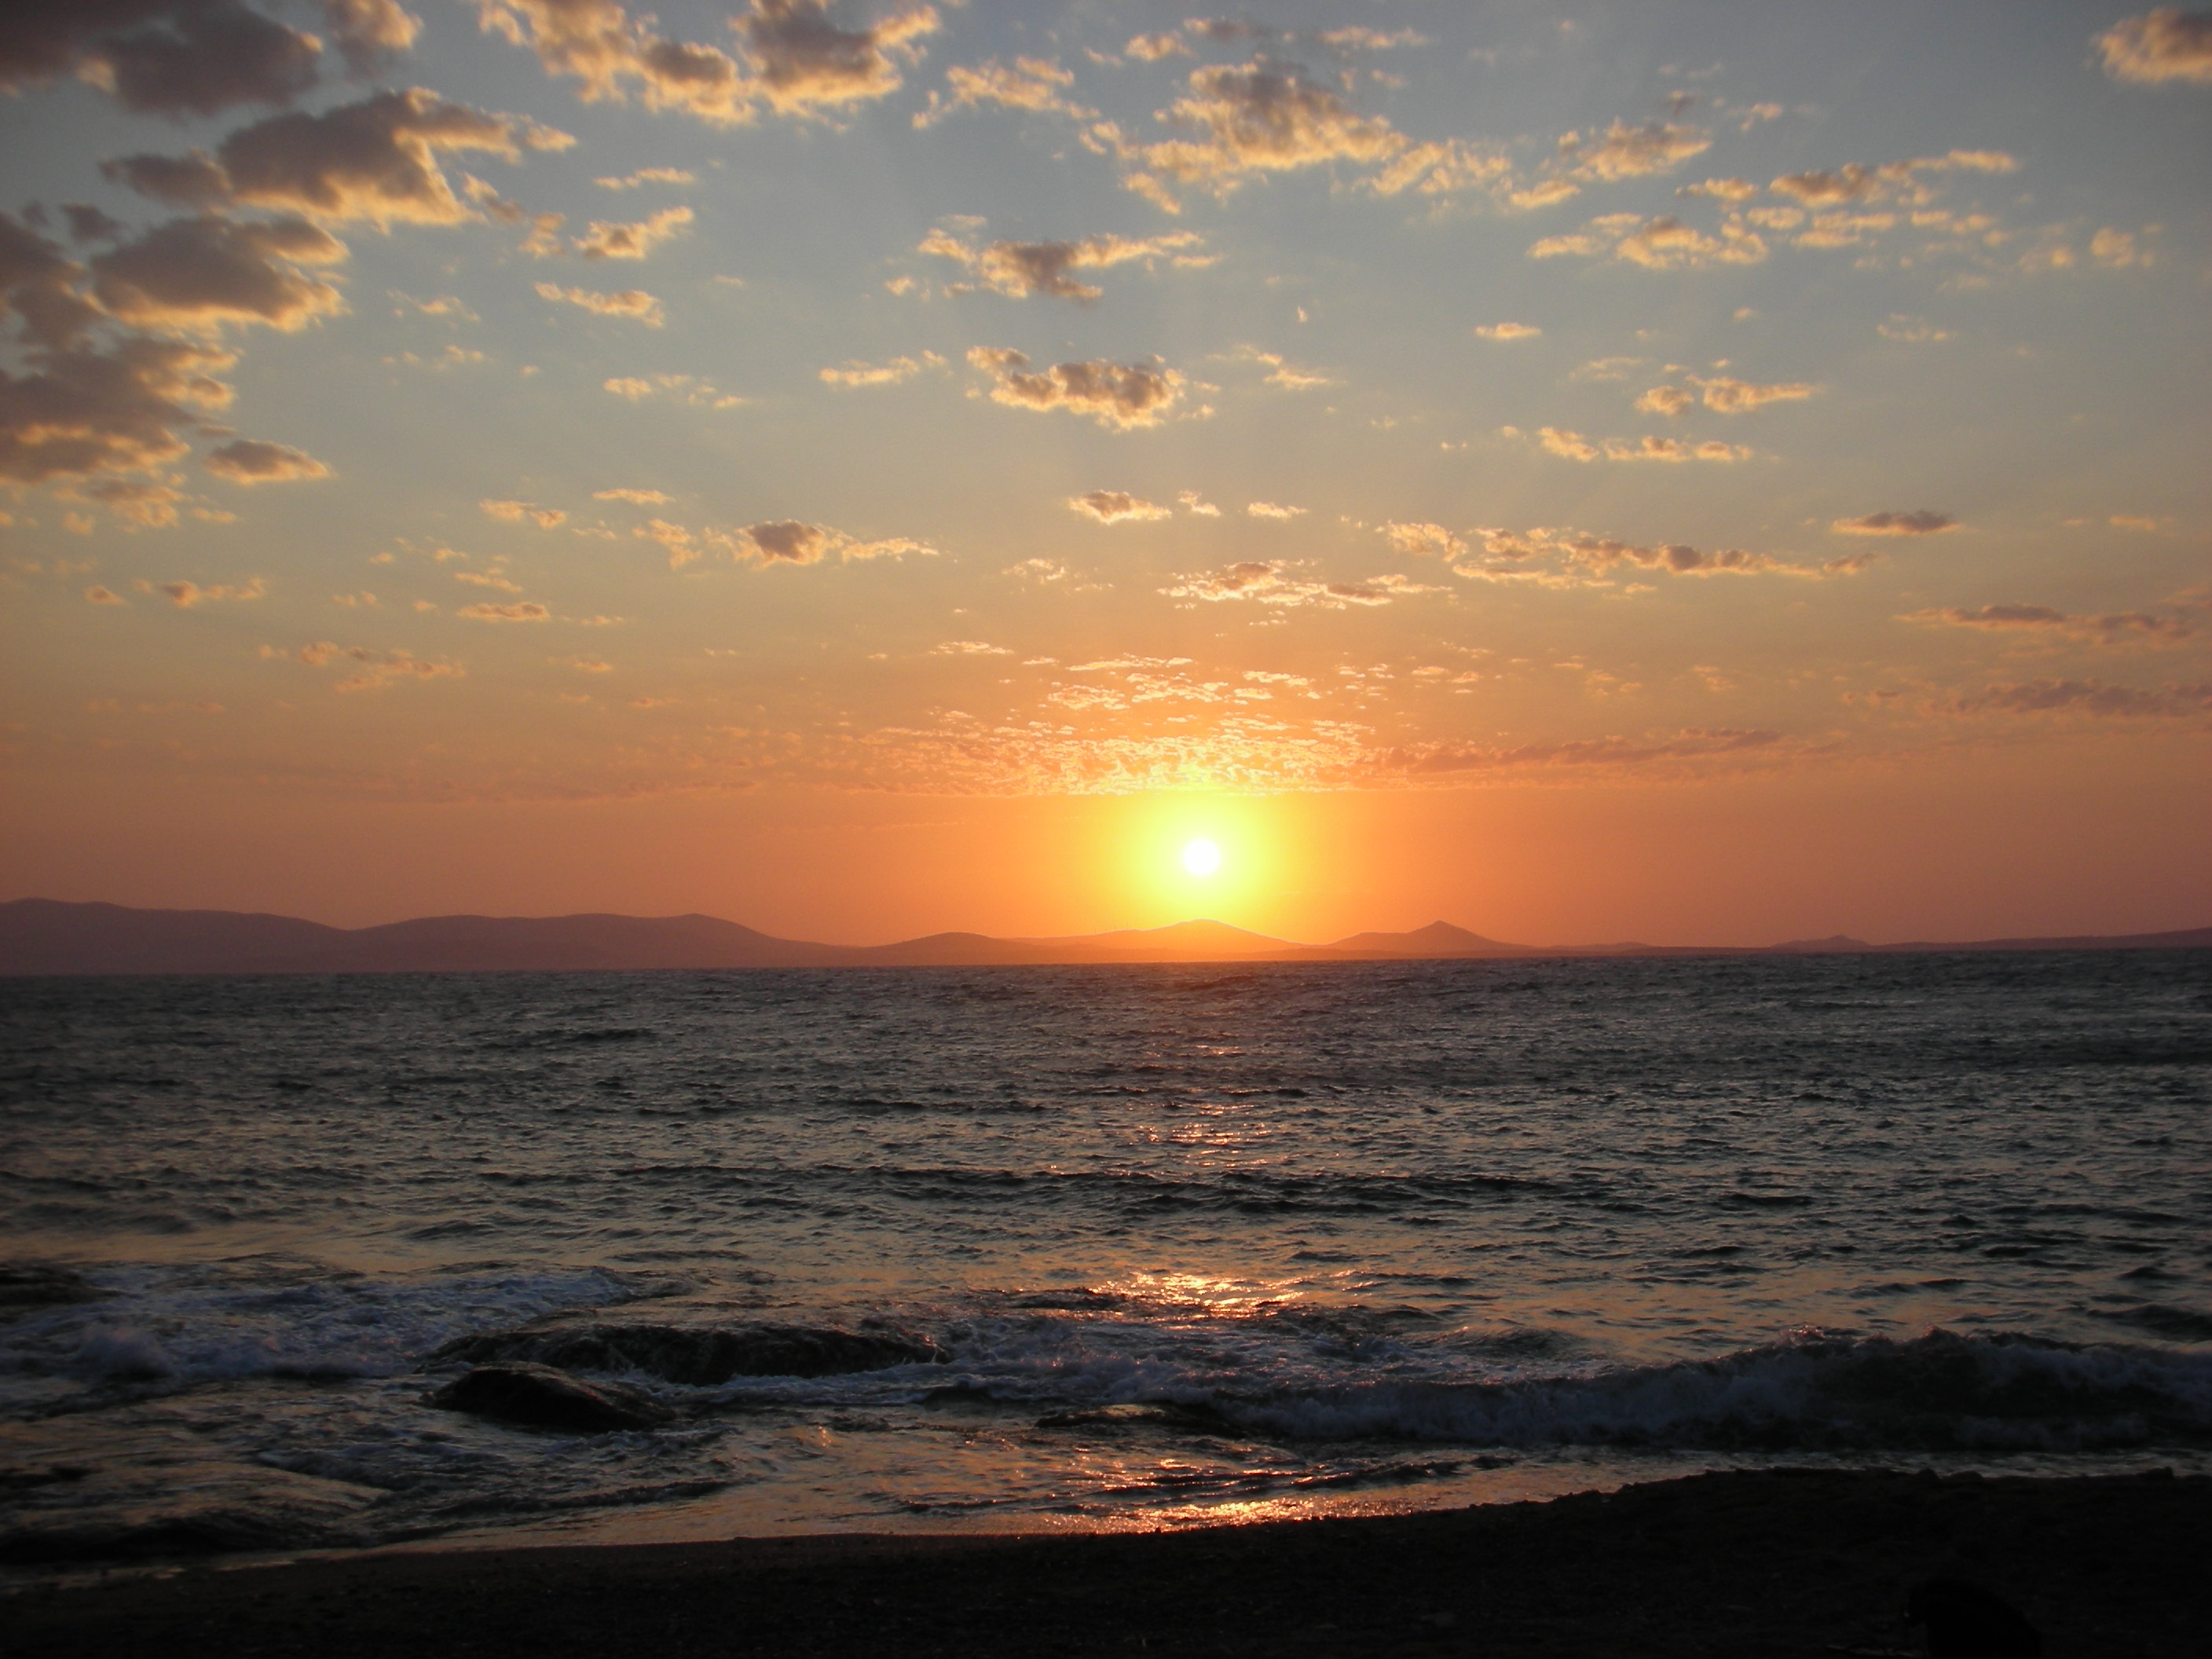 Sunset on Naxos